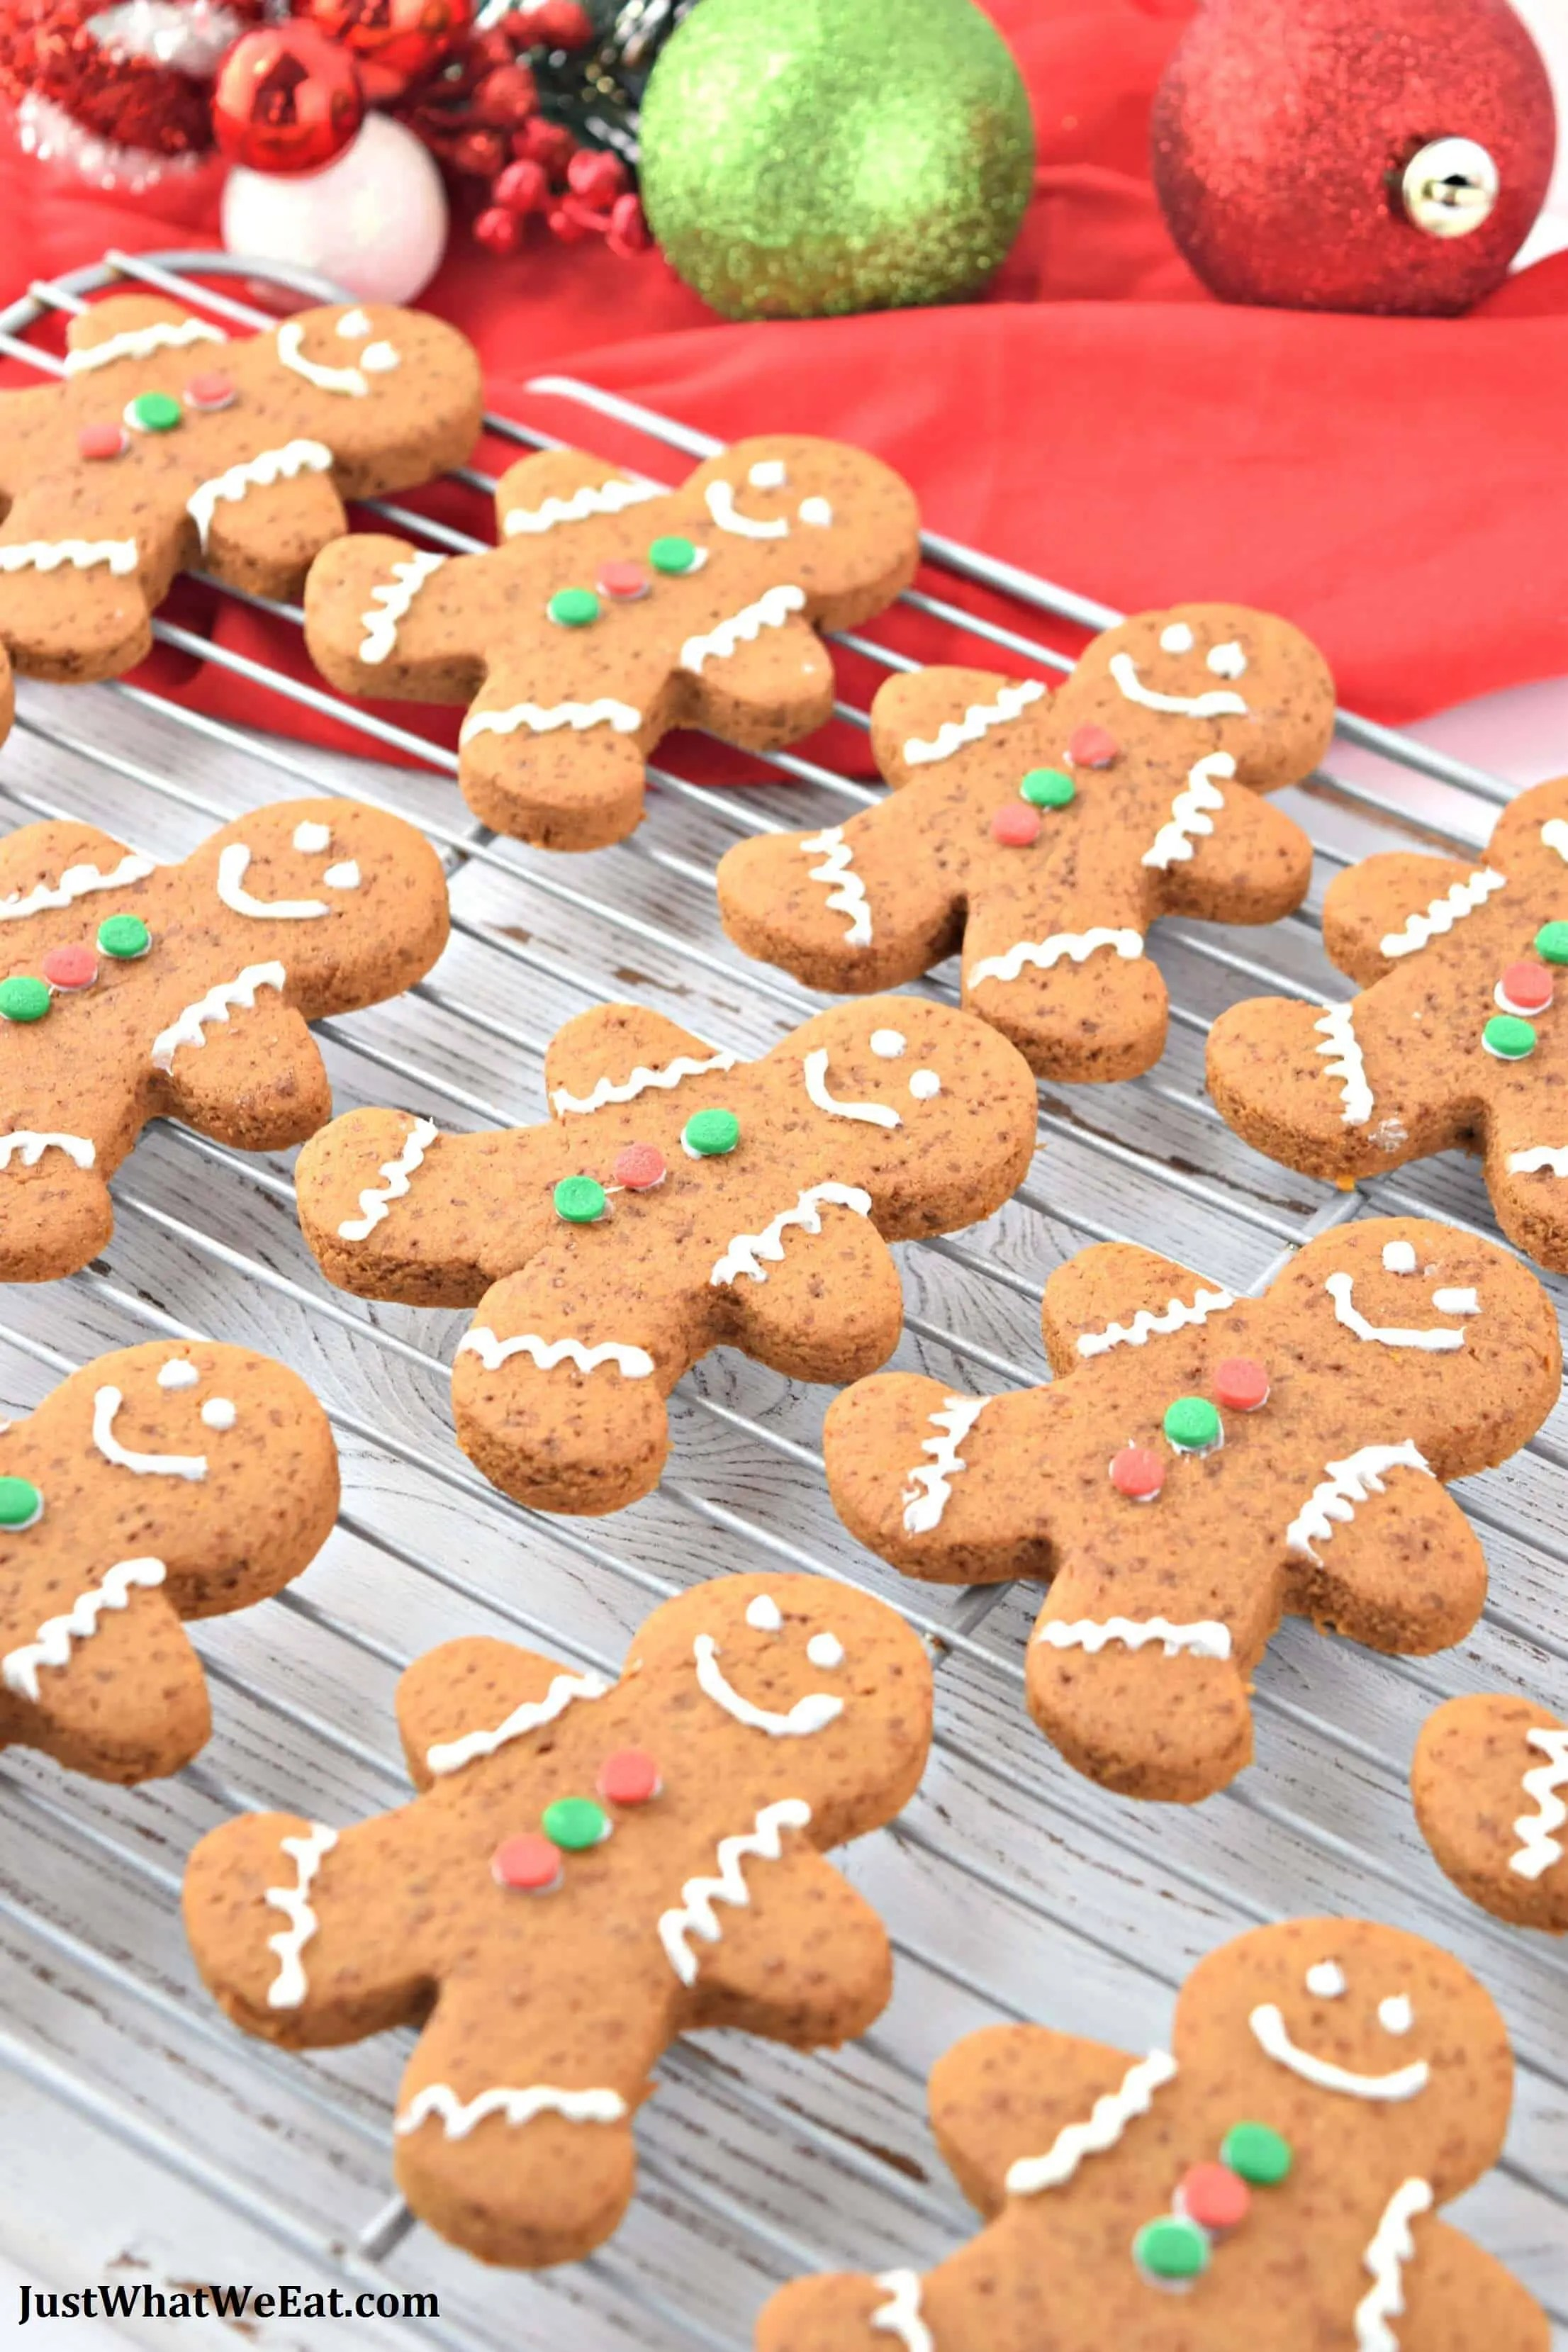 Gingerbread Cookies - Gluten Free & Vegan